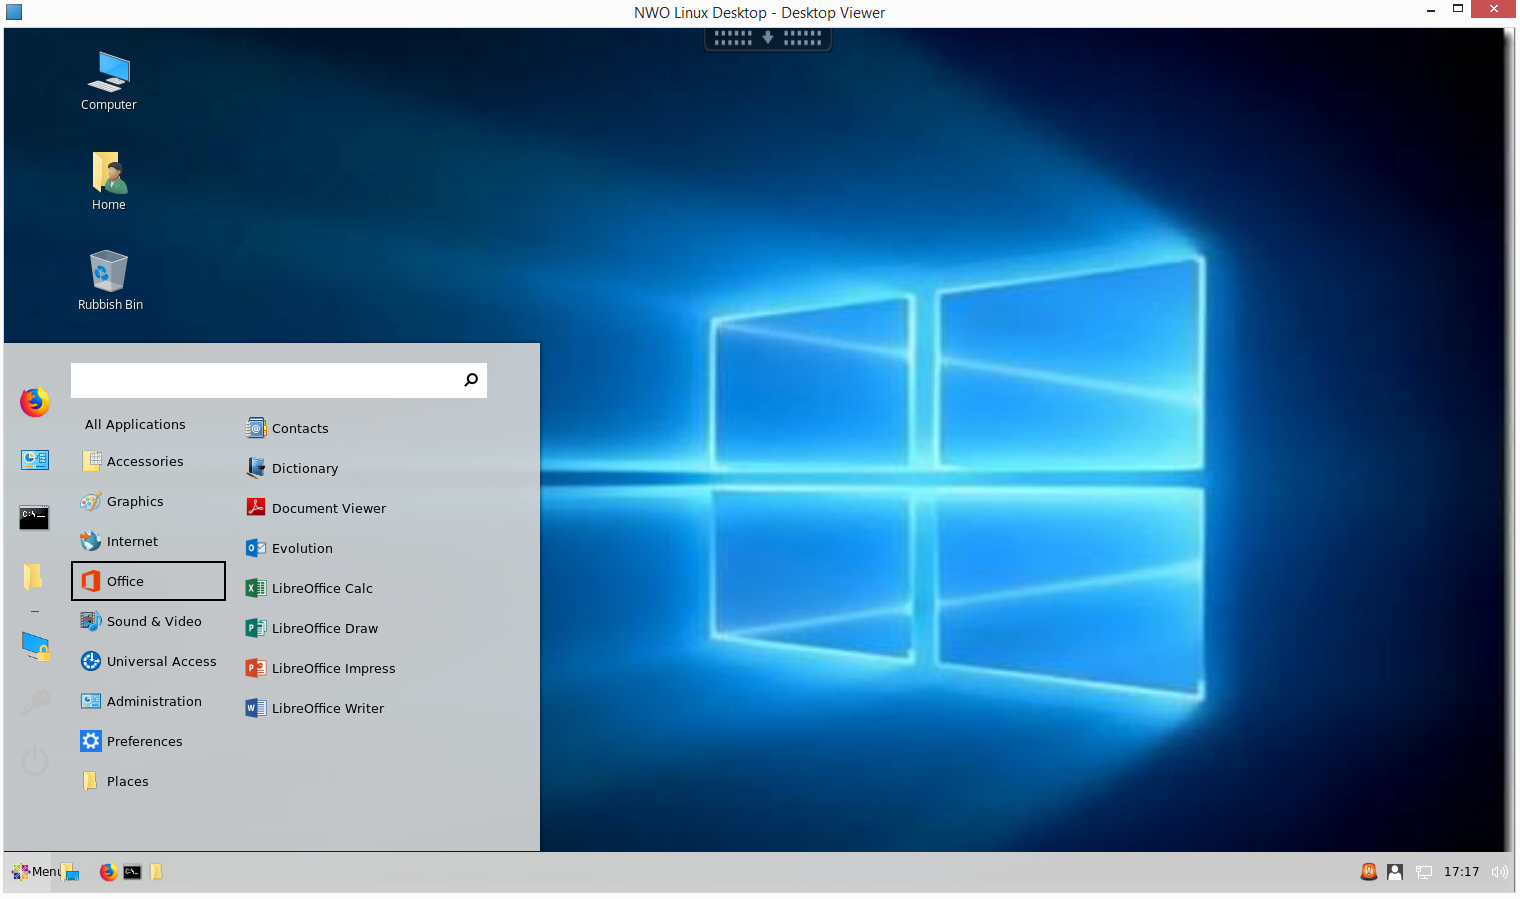 Citrix Session with cinnamon desktop and the Windows 10 theme